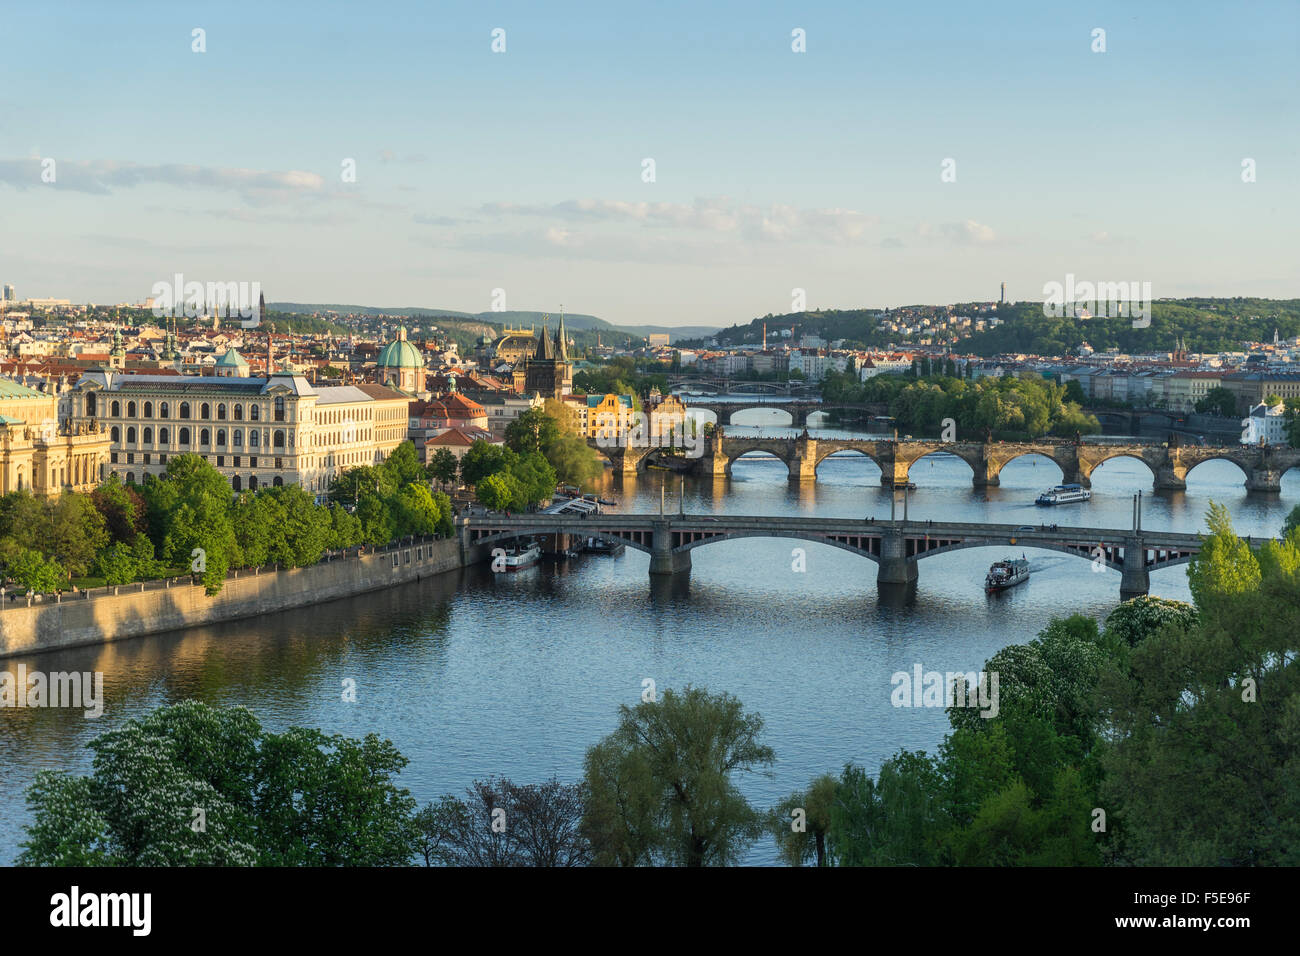 Cityscape Vltava River at the bridges connecting the Old Town to Mala Strana, Prague Castle and Hradcany, Prague, - Stock Image